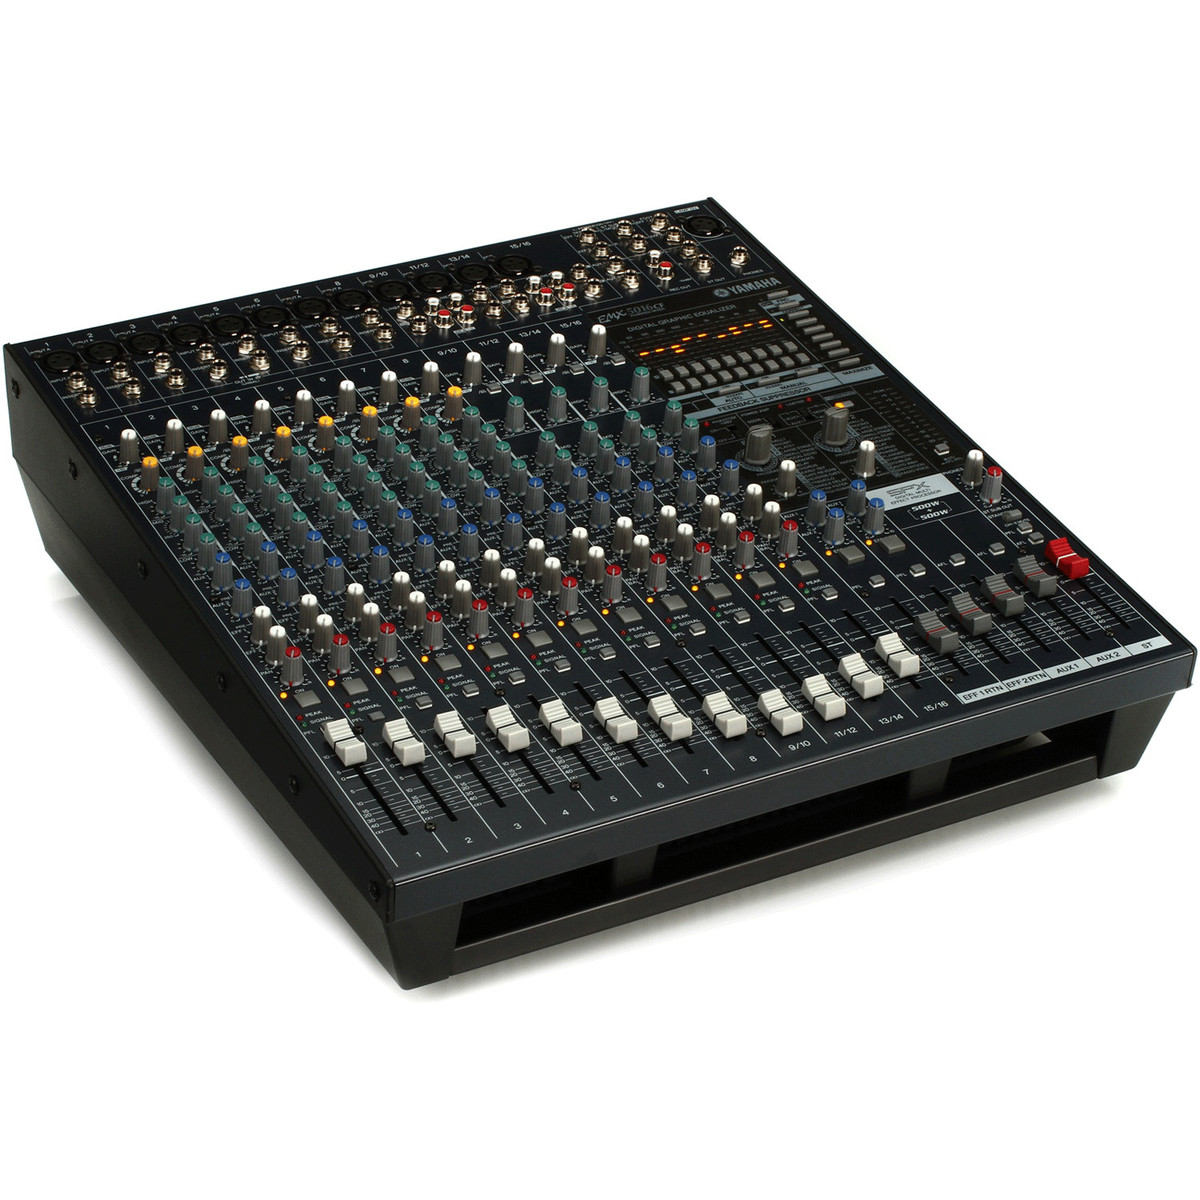 yamaha emx5016cf mixer compare prices at foundem. Black Bedroom Furniture Sets. Home Design Ideas